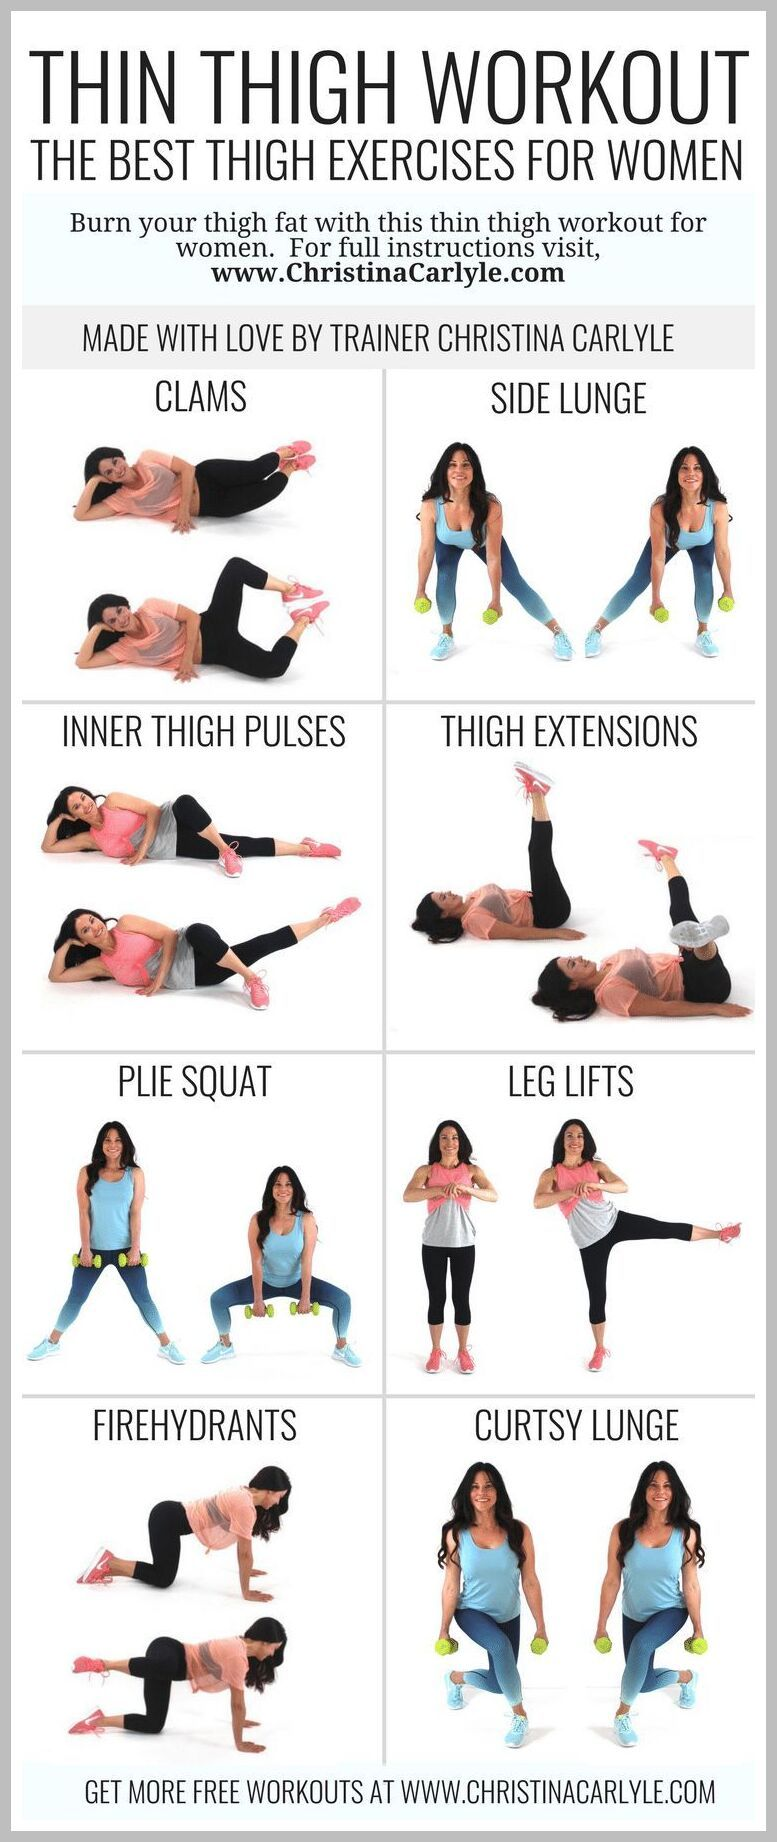 31 Reference Of Chair Exercises For Arms And Legs In 2020 Thigh Exercises For Women Best Thigh Exercises Thin Thighs Workout